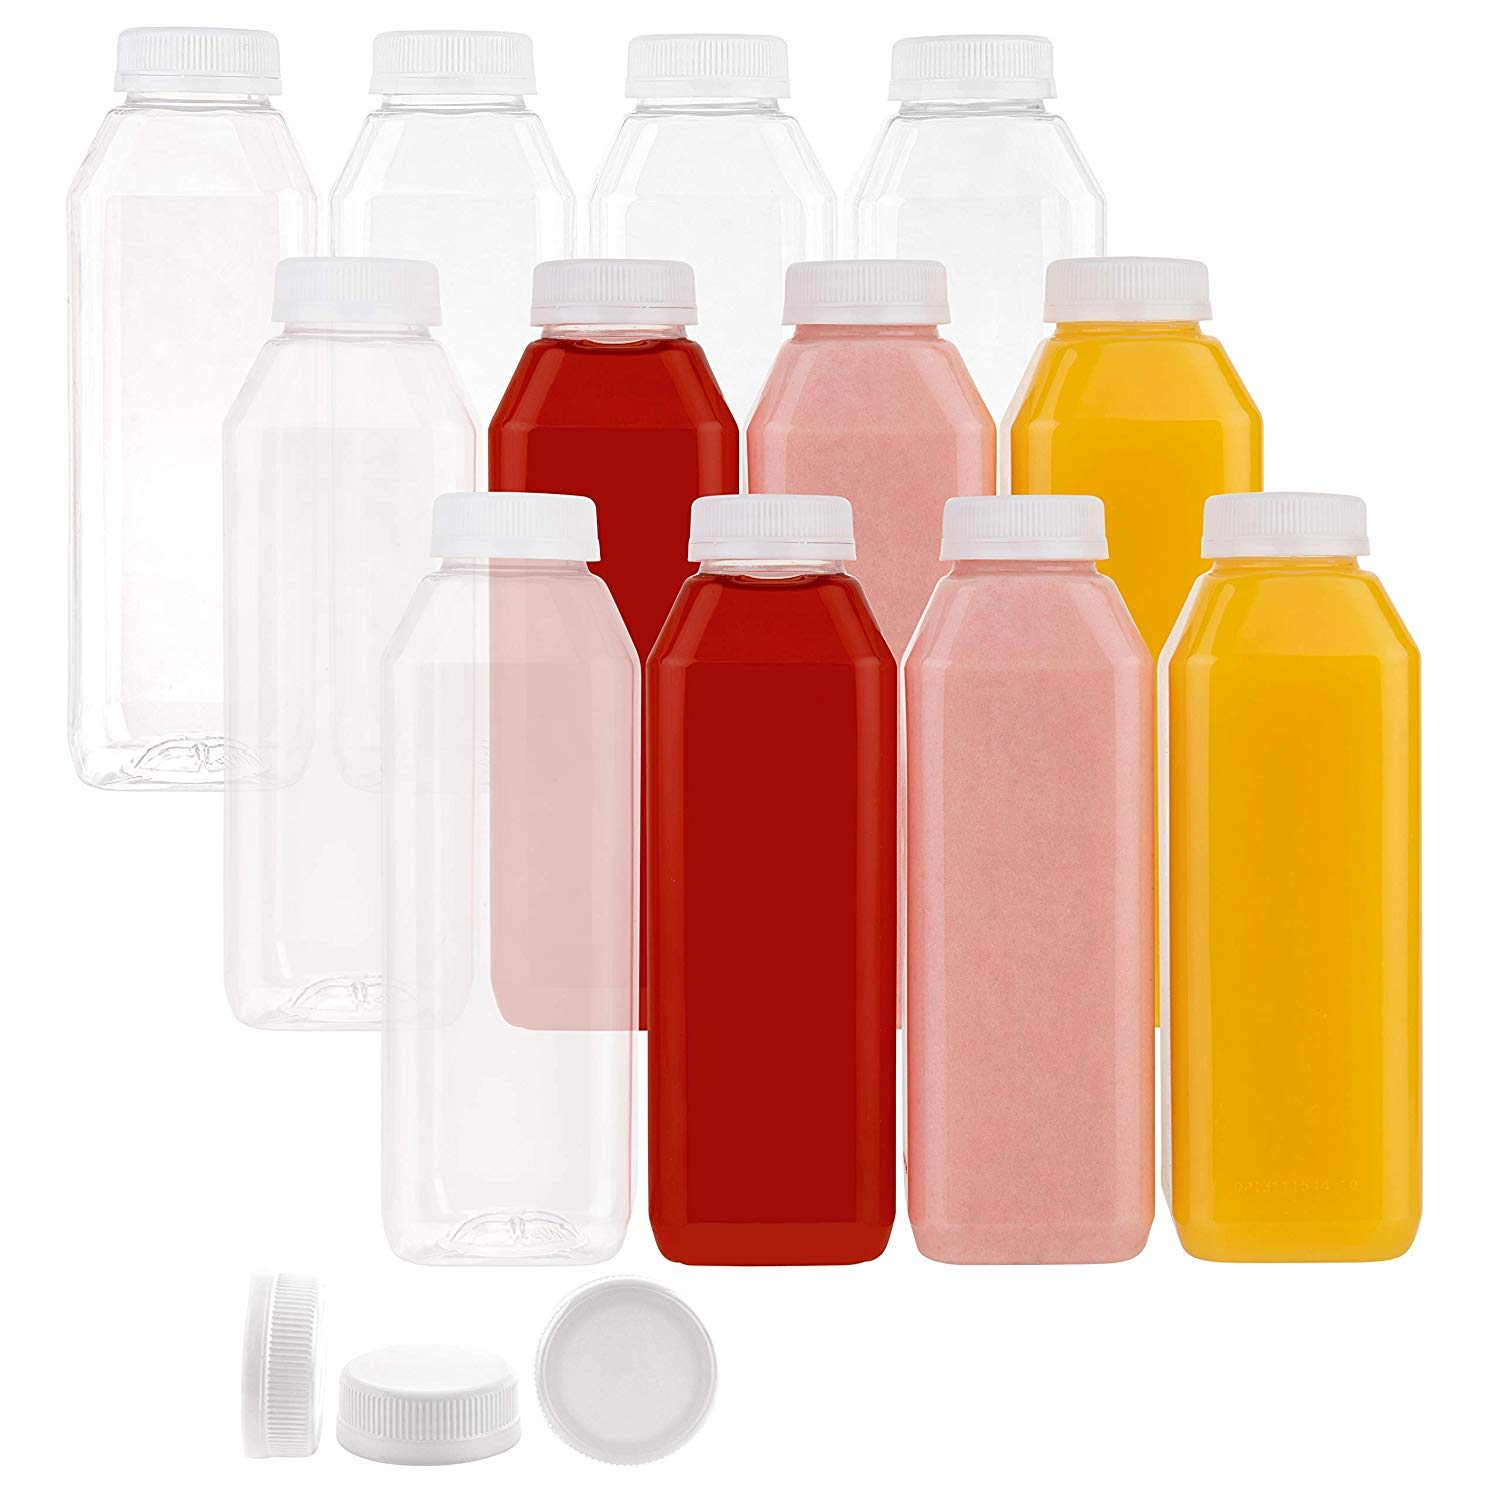 Disposable Plastic Juice Bottles-16 Oz with Lids | 160 Pack | for Water, Orange Apple Lemon Juicing, Smoothies, Milk, Reusable, BPA Free, Tamper-Proof Caps, Catering, Takeout